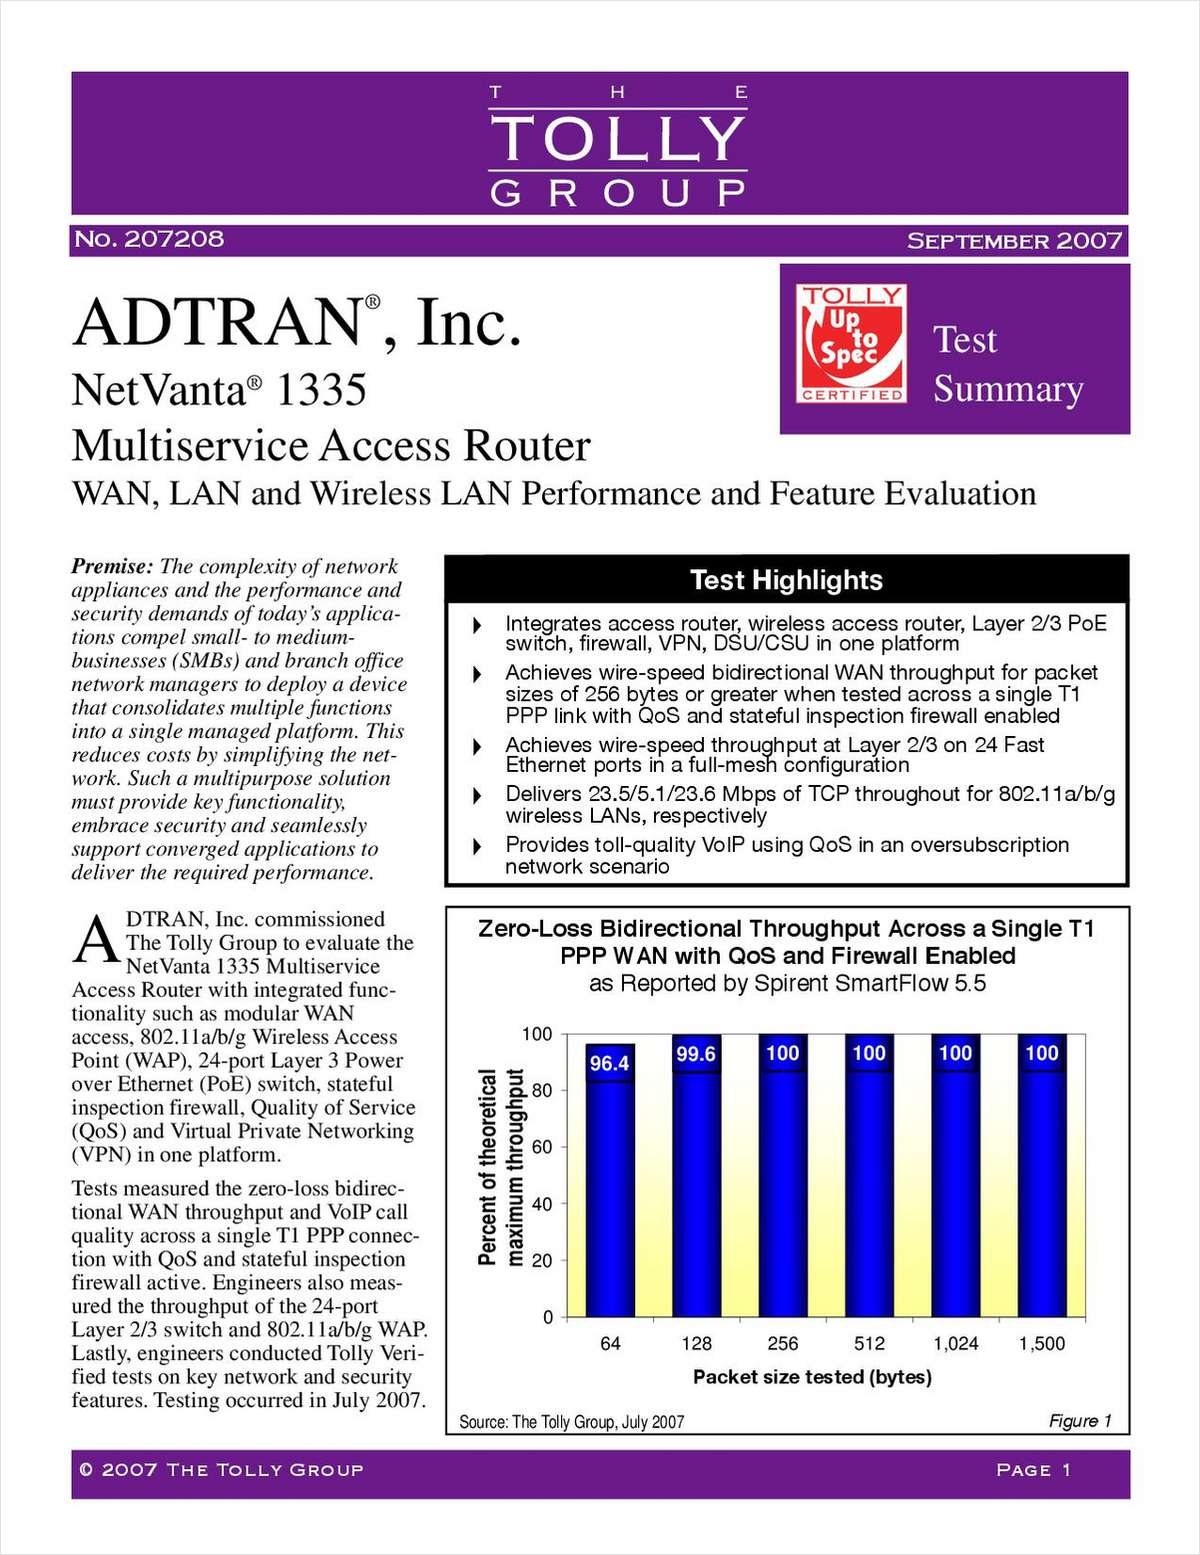 WAN, LAN & Wireless LAN Performance & Feature Evaluation by the Tolly Group